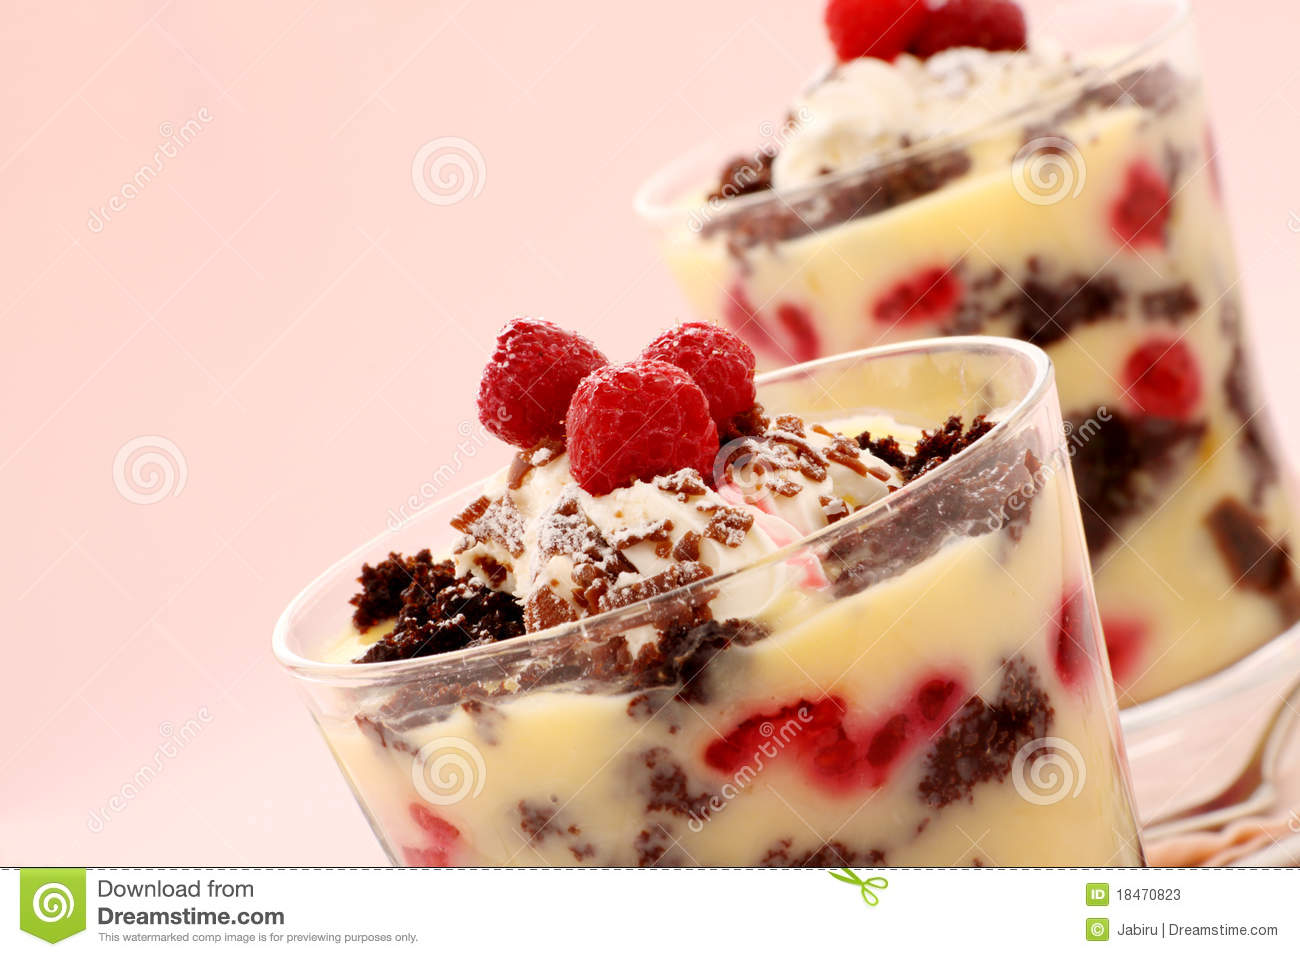 ... chocolate trifle dessert served in two glasses topped with raspberries